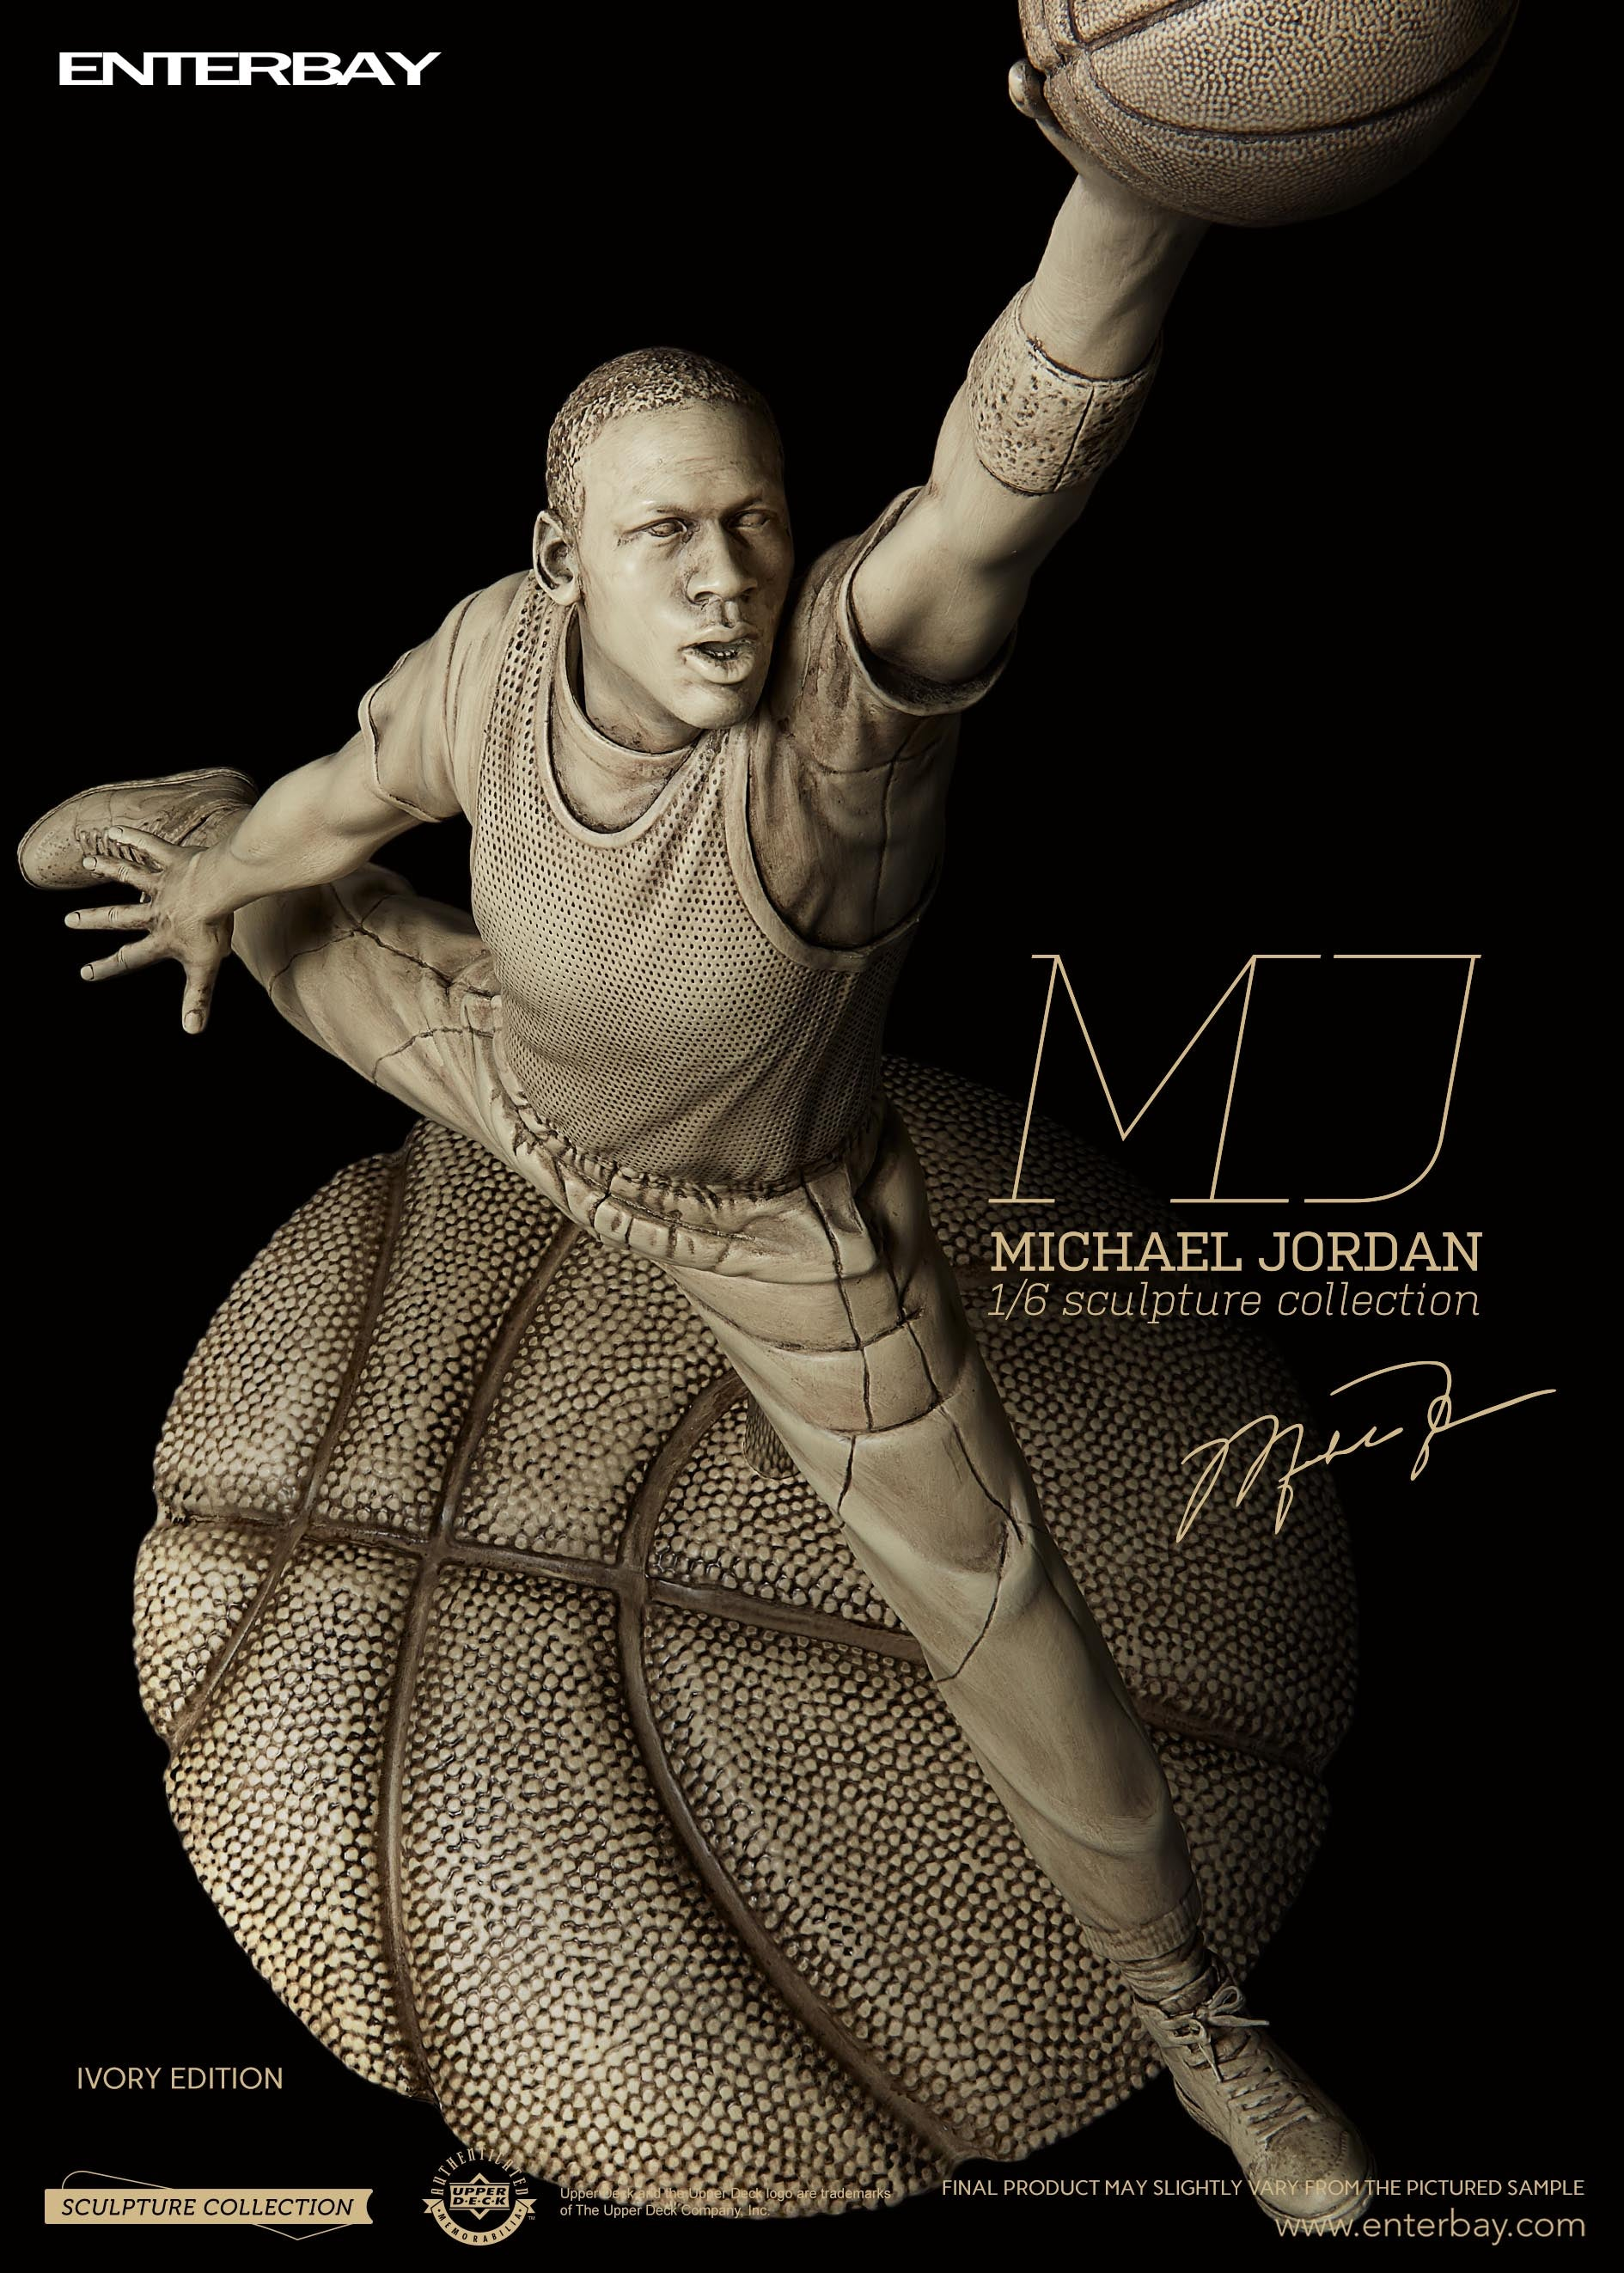 ENTERBAY 1/6 Sculpture Collection - Michael Jordan Ivory Edition Limited(Now Available)